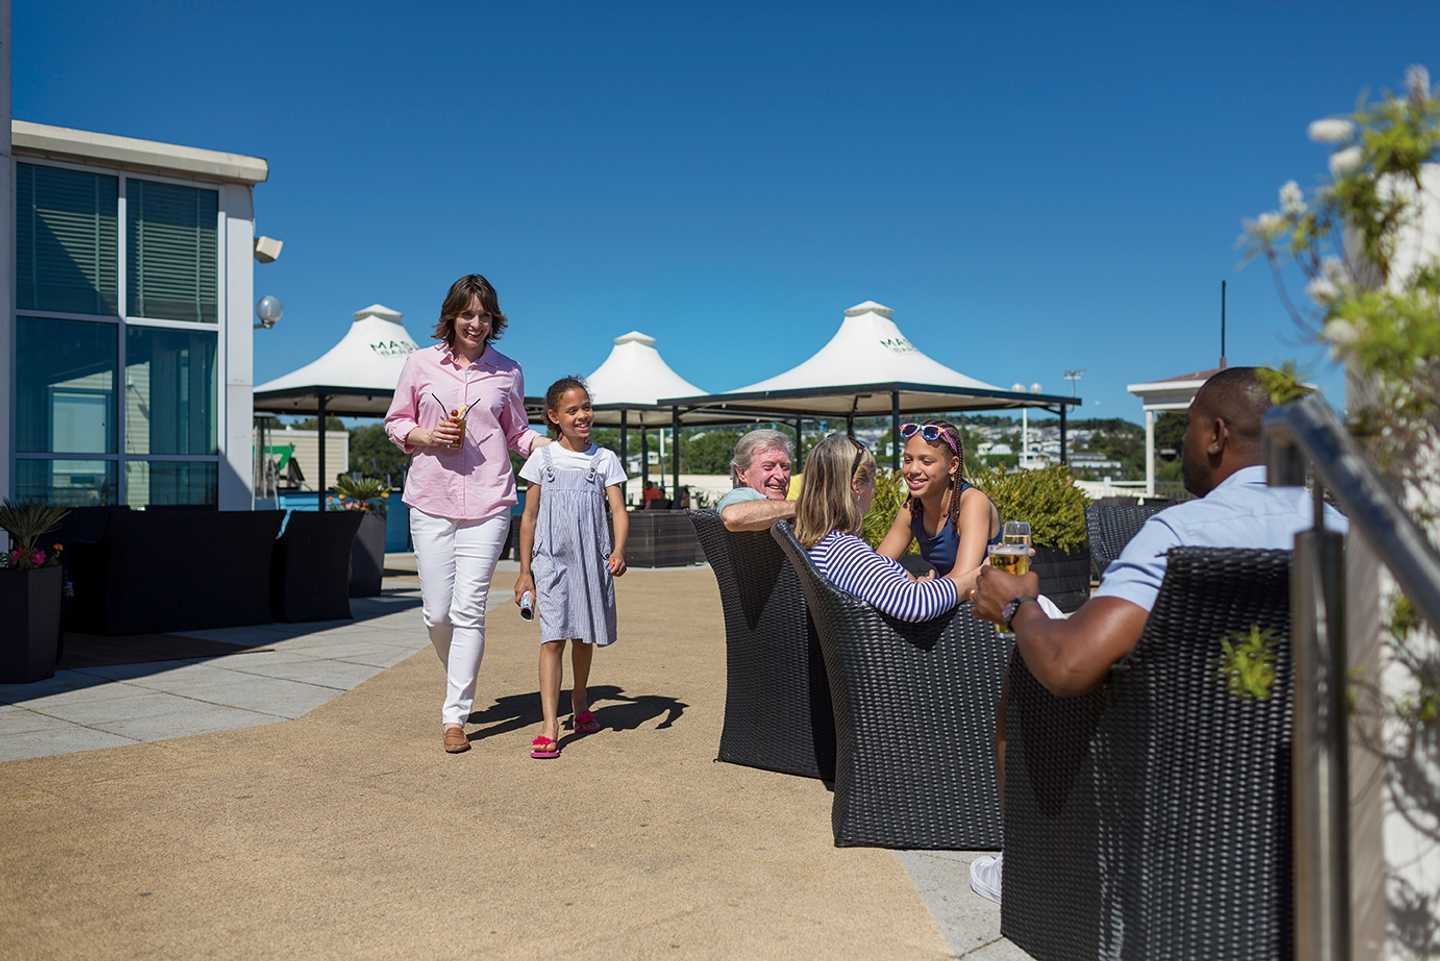 Relax with a drink on the Mash and Barrel terrace area